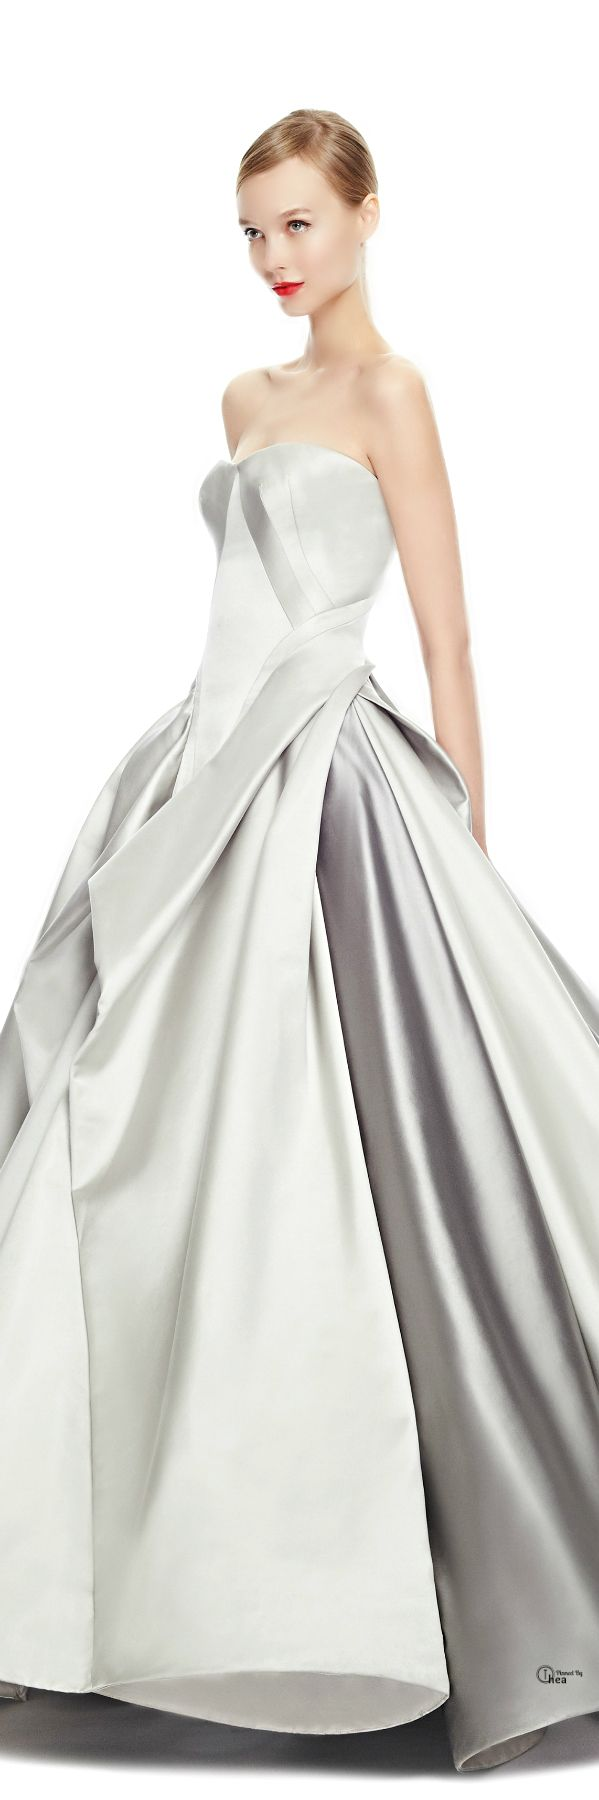 Zac Posen ● FW 2014, Duchess Satin Gown.  I love the architectural element to this gown, it's amazing but boy do you have to be tall to pull it off!!!